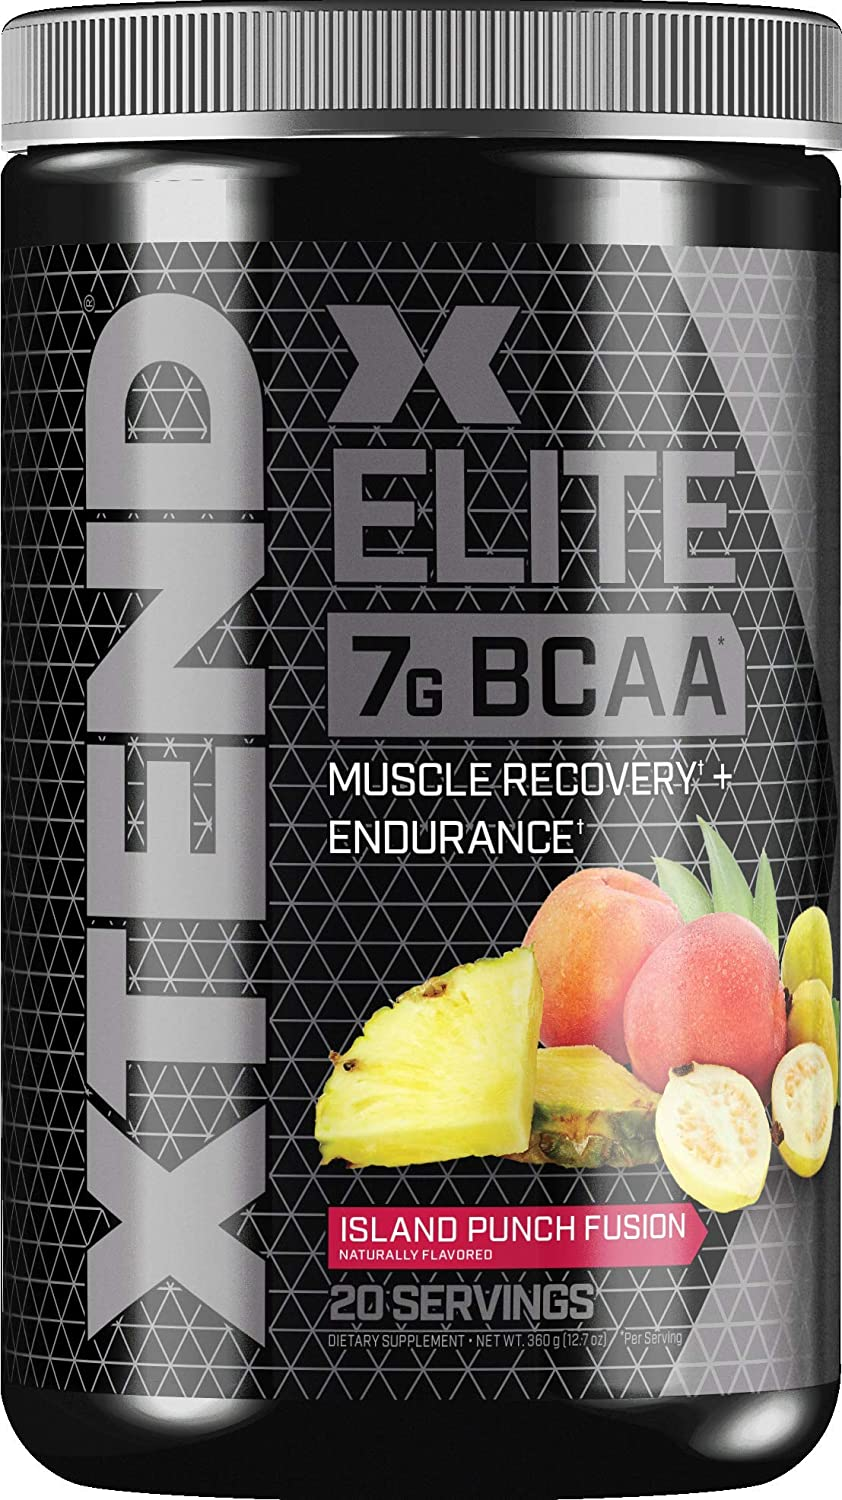 Xtend Elite Bcaa Powder Island Punch Fusion Sugar Free Post Workout Muscle Recovery Drink with Amino Acids 7g bcaas for Men Women 20 Servings